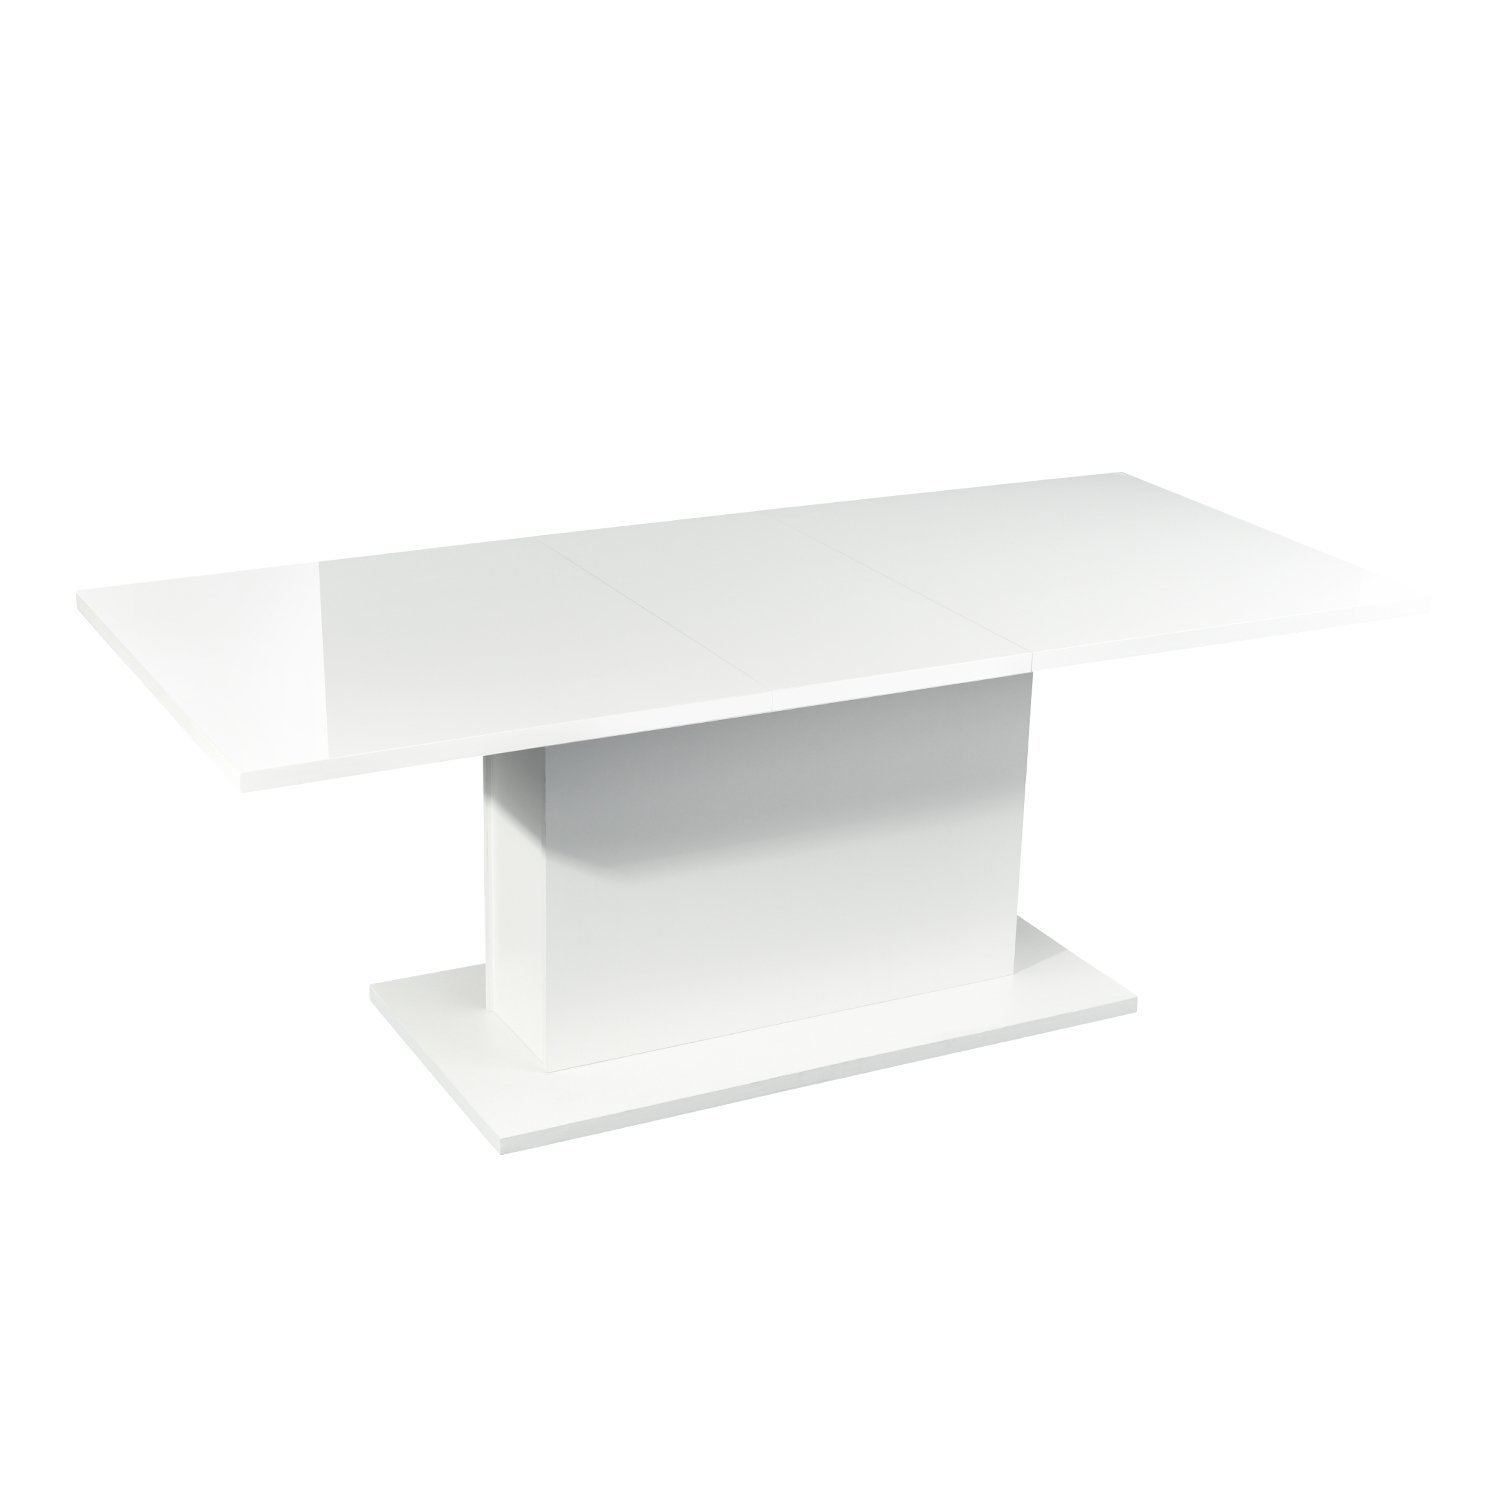 High Gloss White Extendable Rectangular Dining Table, Mltifunction Space Saving Wood Table (High Gloss White Top)